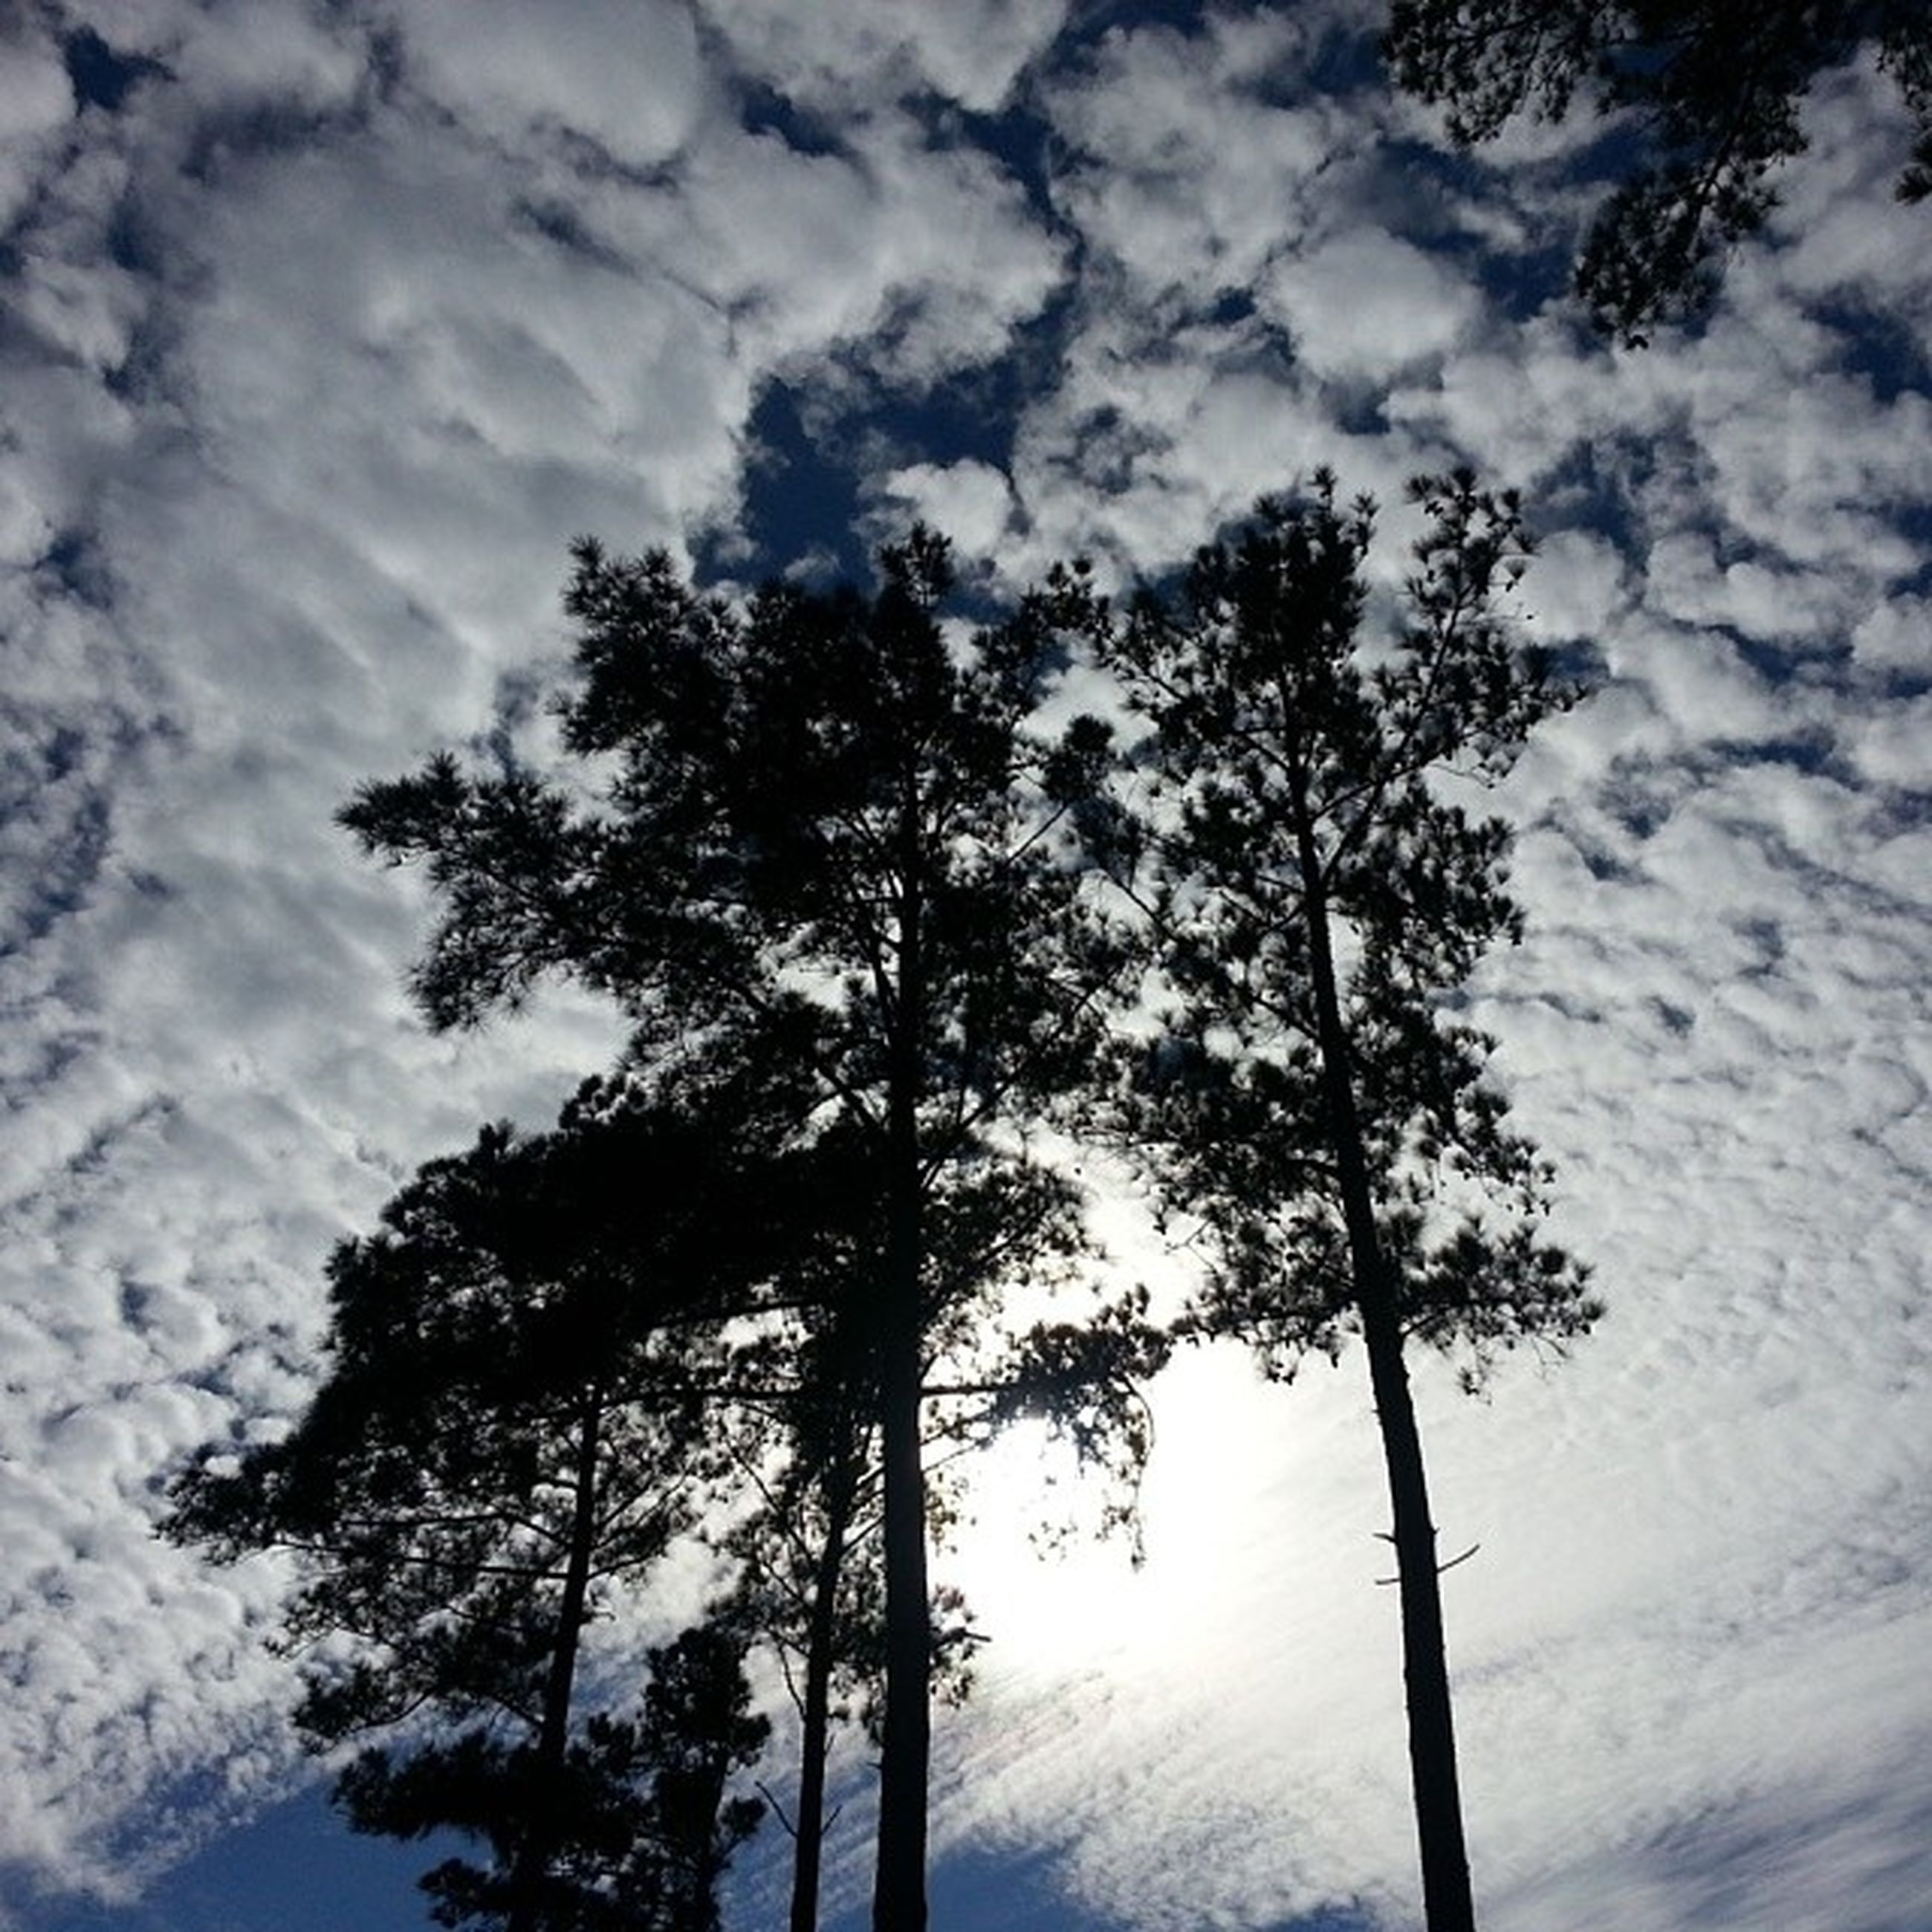 tree, sky, low angle view, tranquility, cloud - sky, beauty in nature, tranquil scene, nature, scenics, silhouette, cloudy, growth, tree trunk, cloud, branch, bare tree, weather, outdoors, no people, day